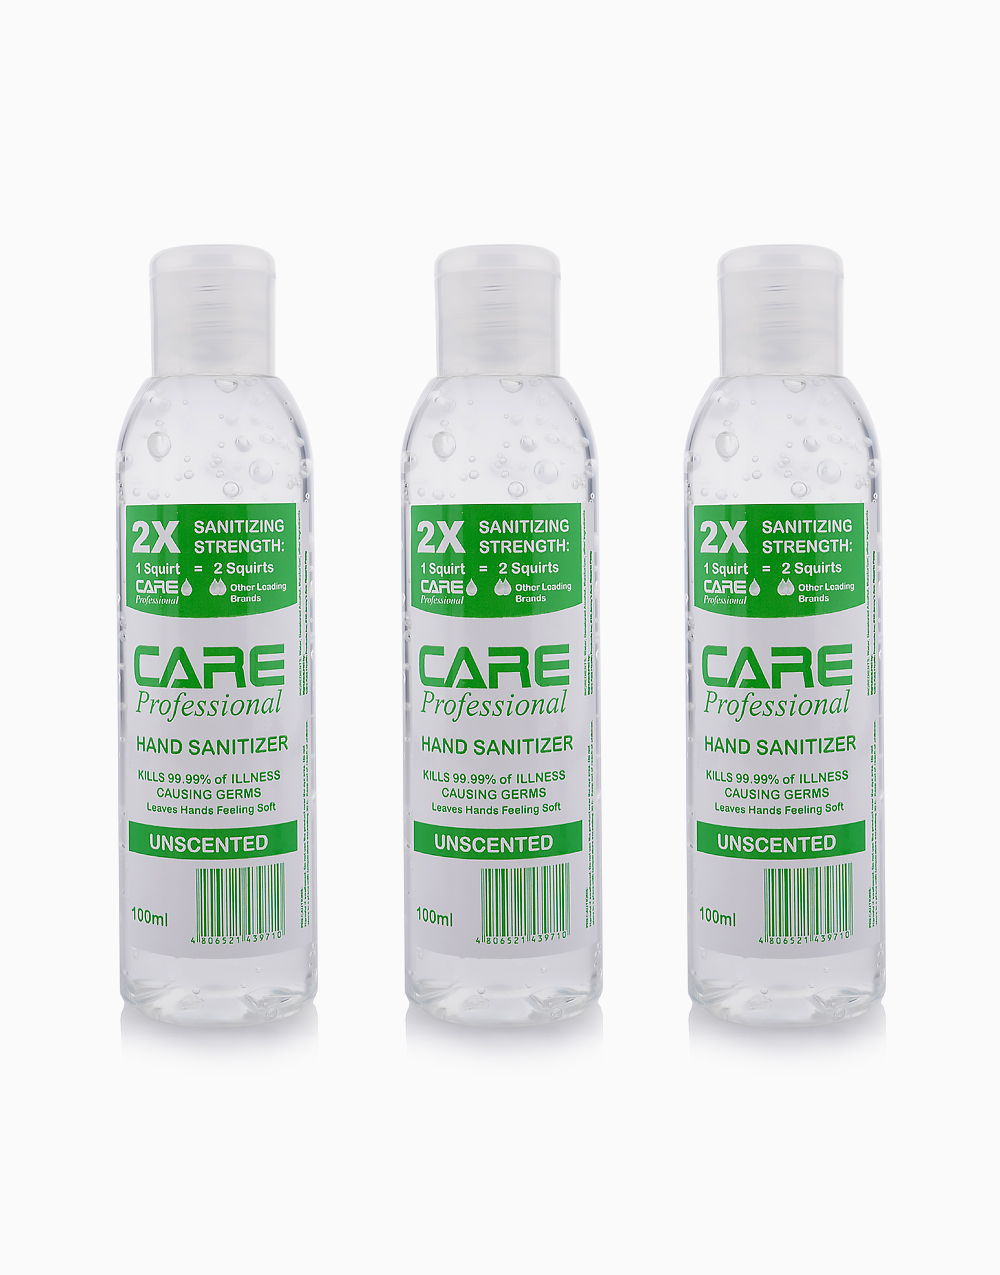 Care Professional Hand Sanitizer 60% Isopropyl (Pack of 3) by Soolit